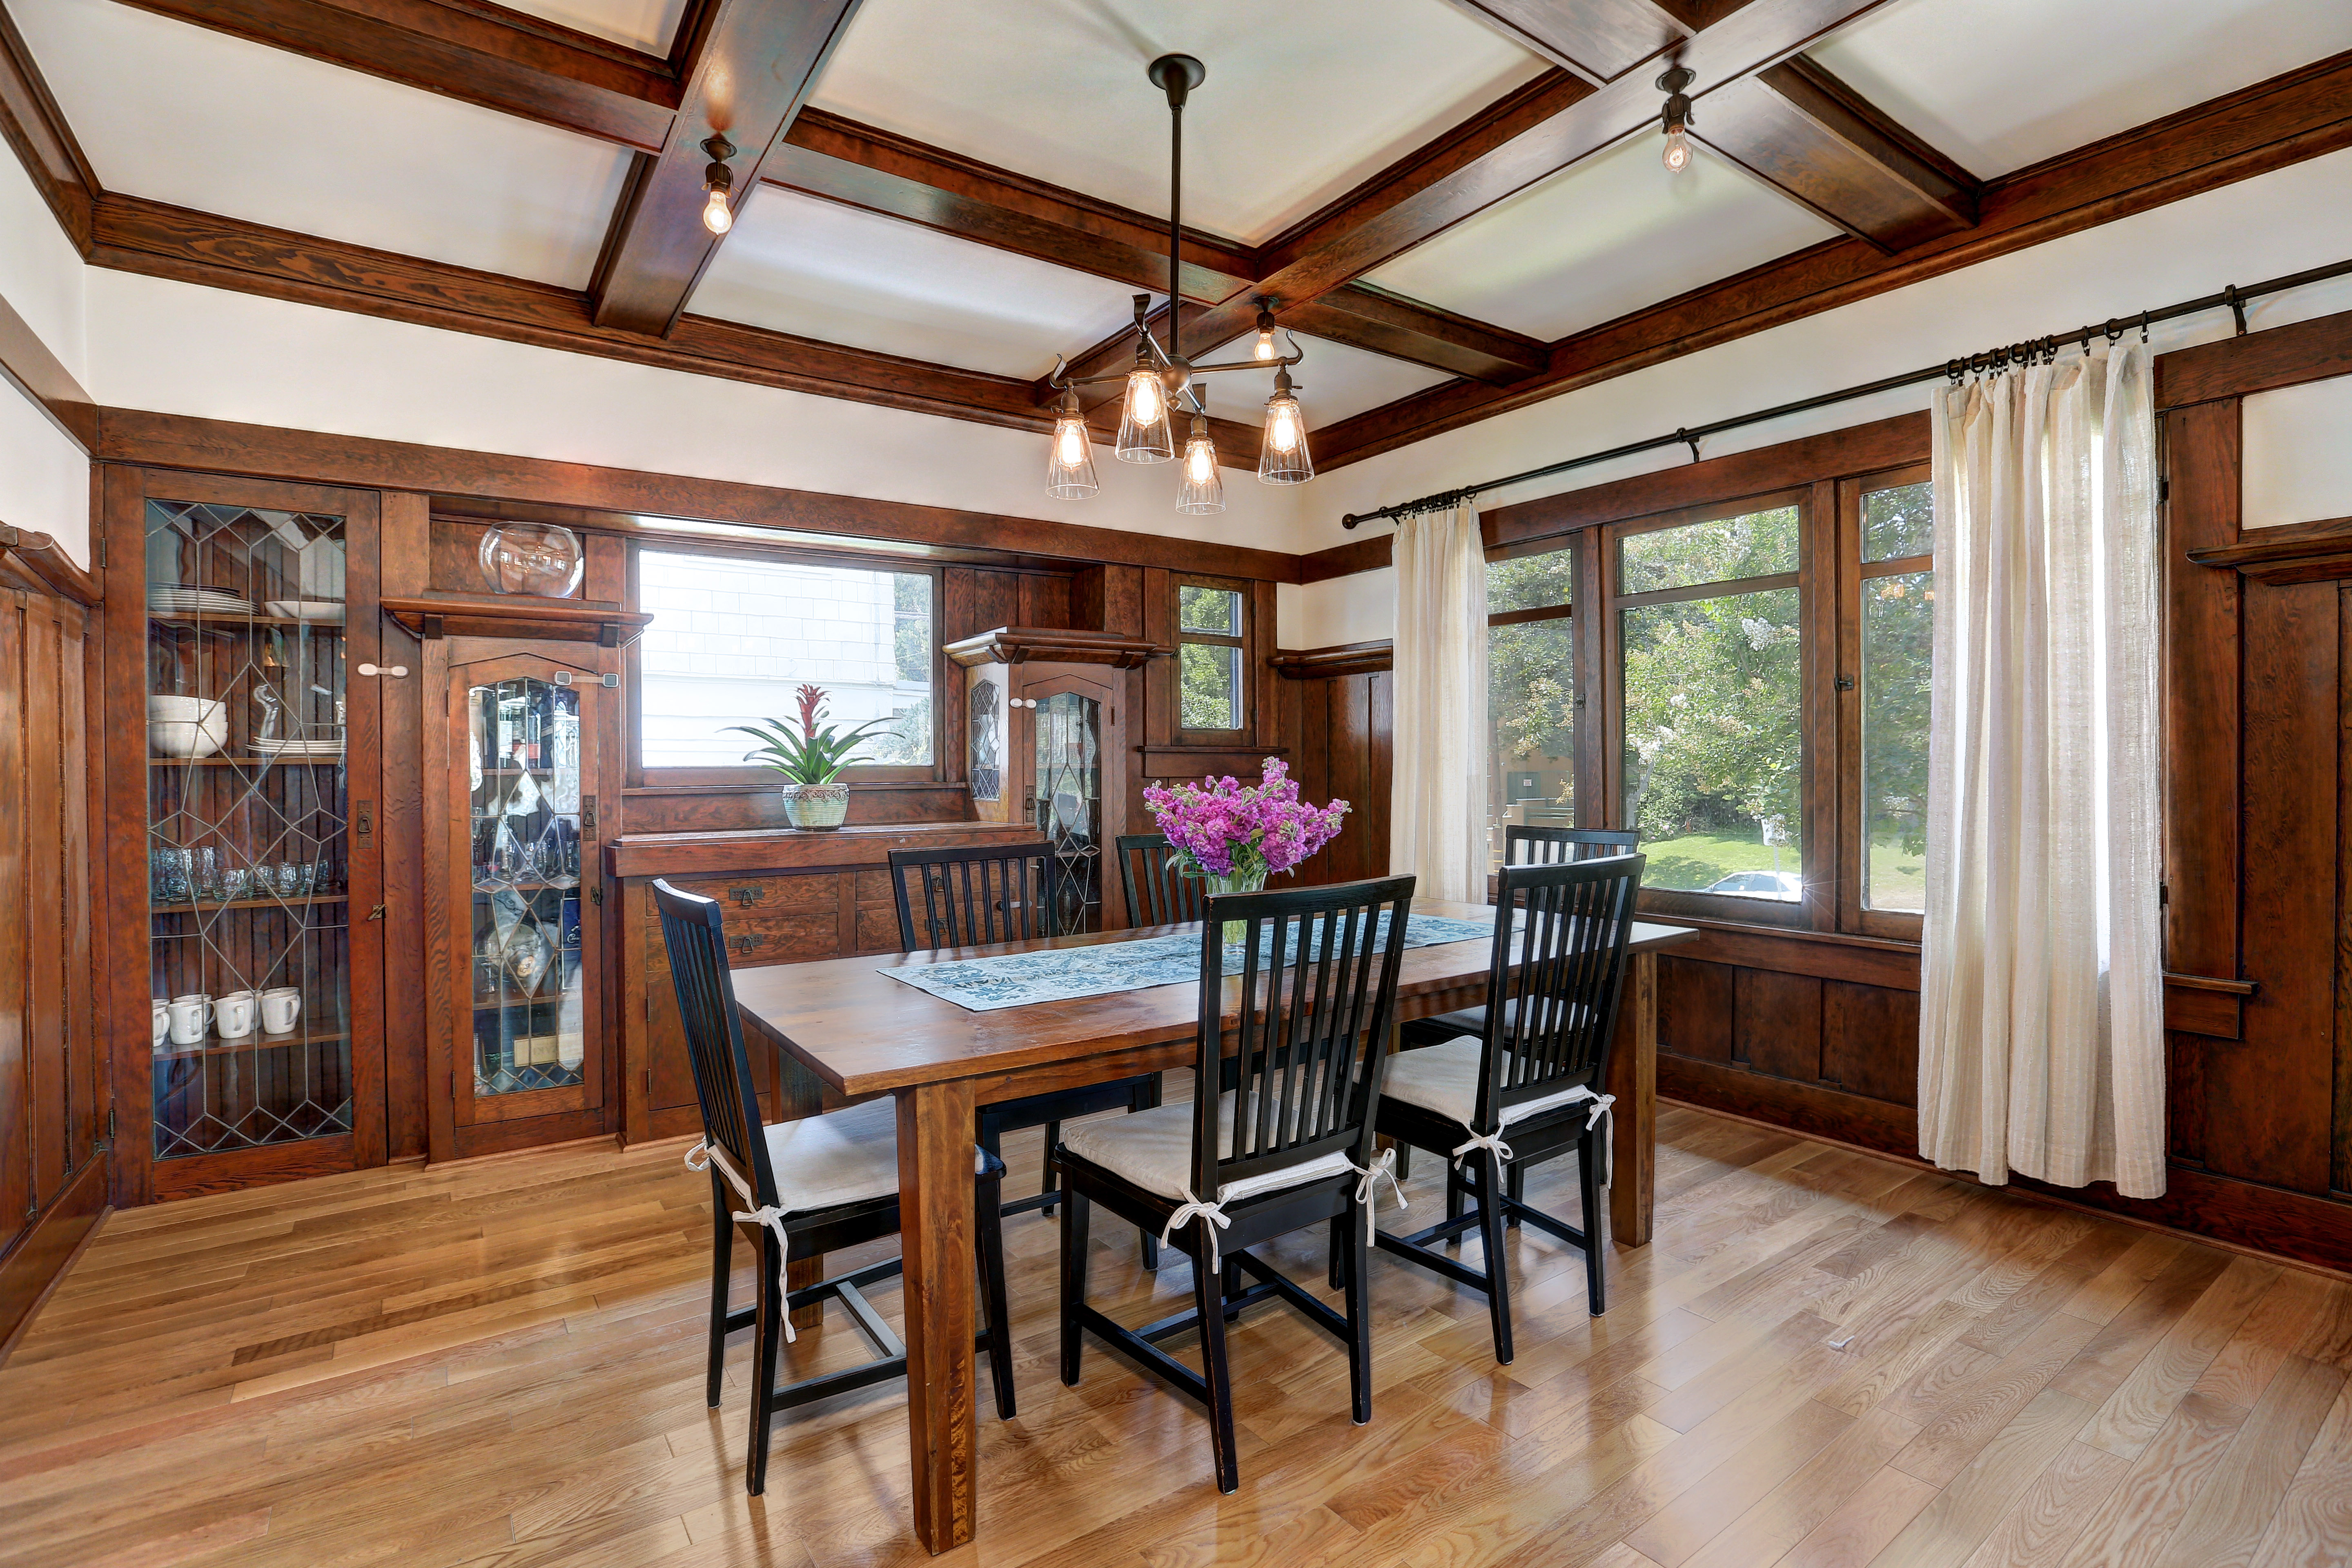 1918 Larchmont Craftsman With Sun Room Tiled Fireplace